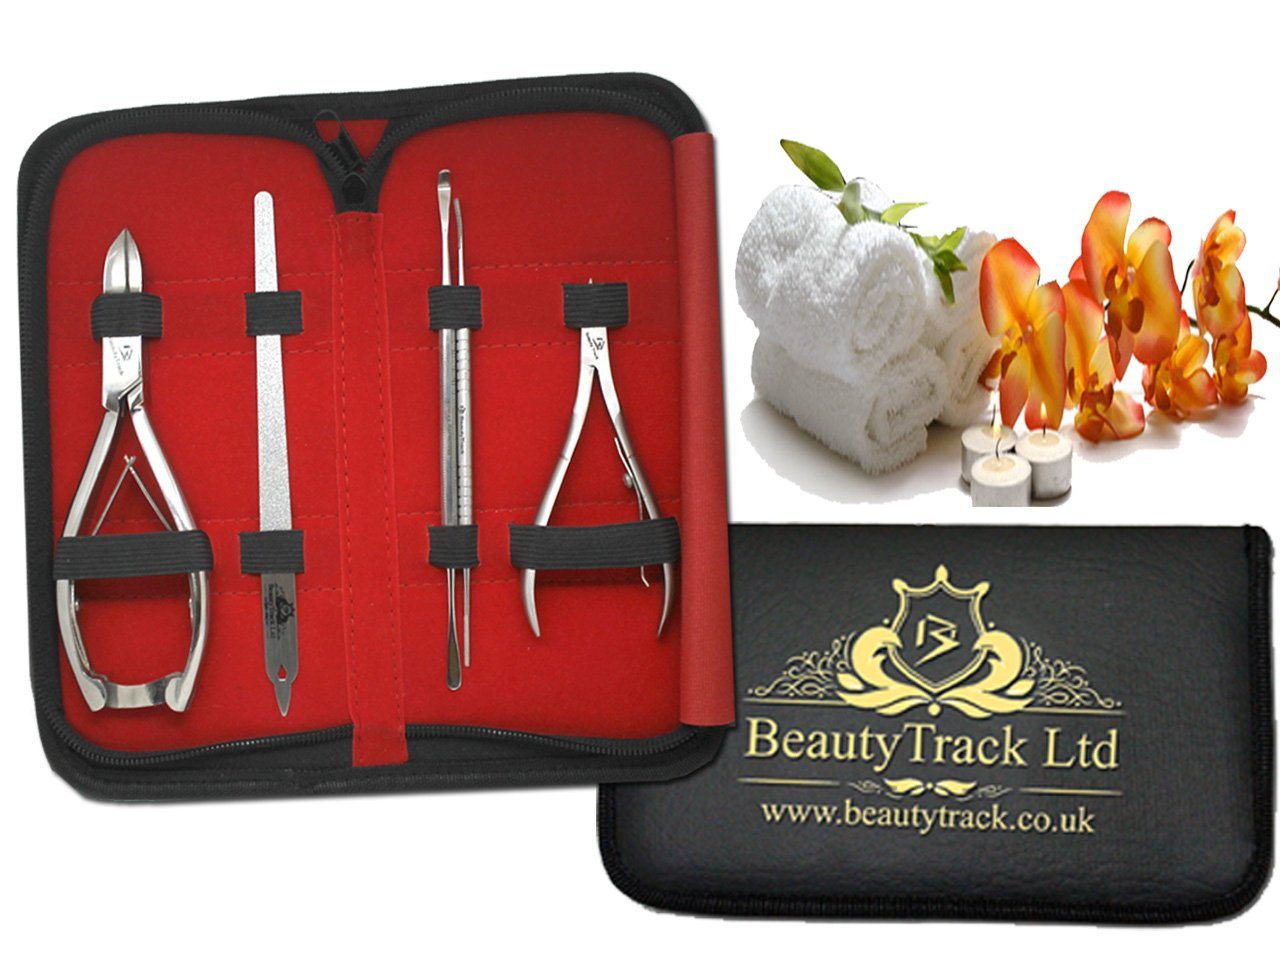 BeautyTrack Professional ingrown Toenail Clipper - Nail Cutter Set + Tools Complete Care for Hands Feet - Cuticle Scissor Forceps - Chiropody - Podiatry instruments